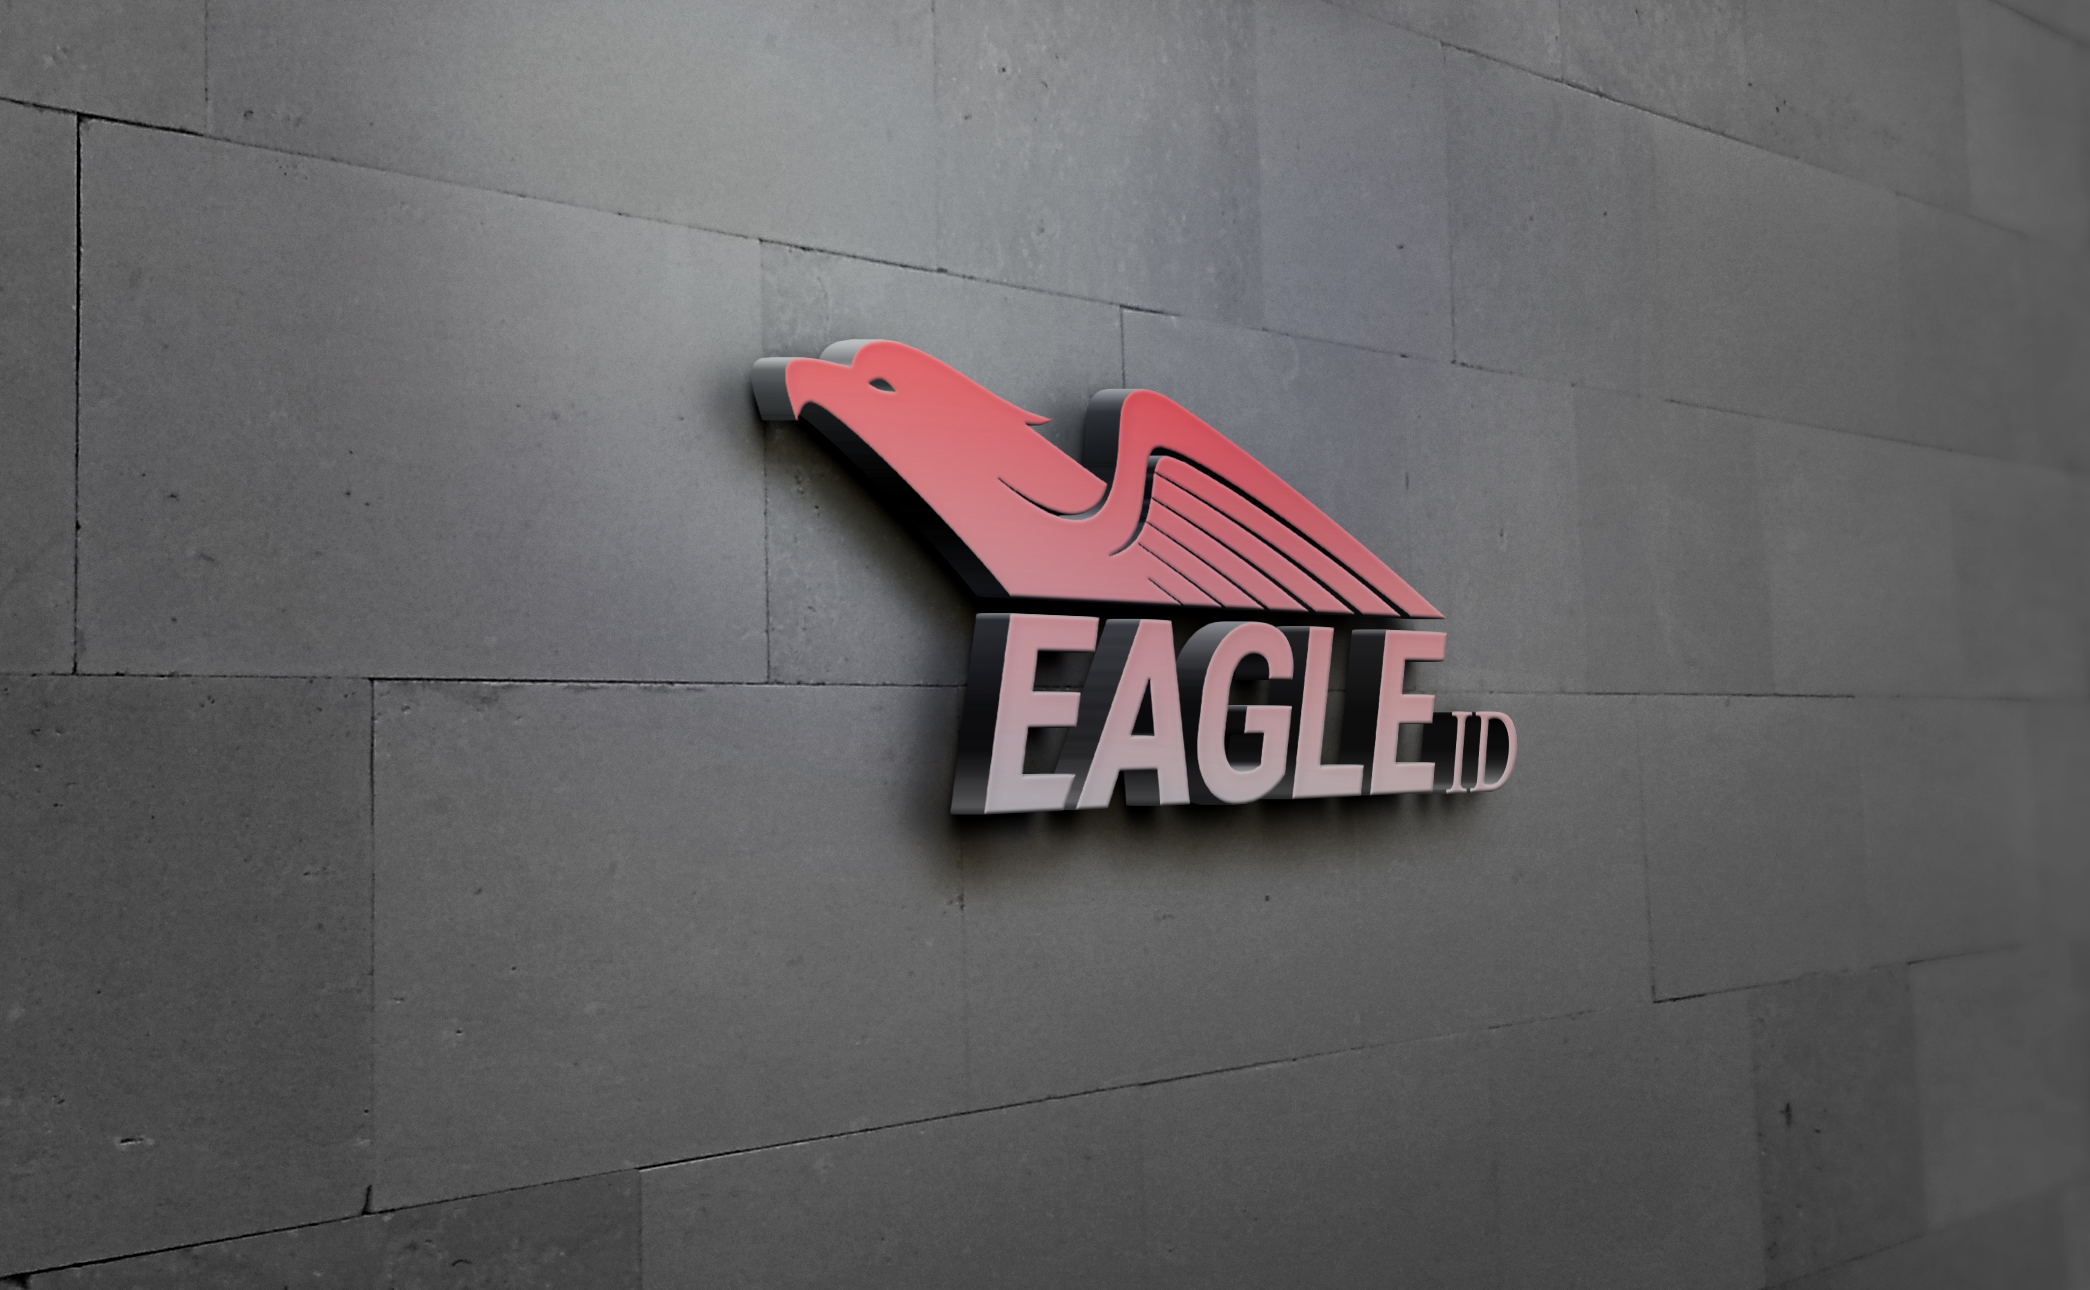 eagleid 3d